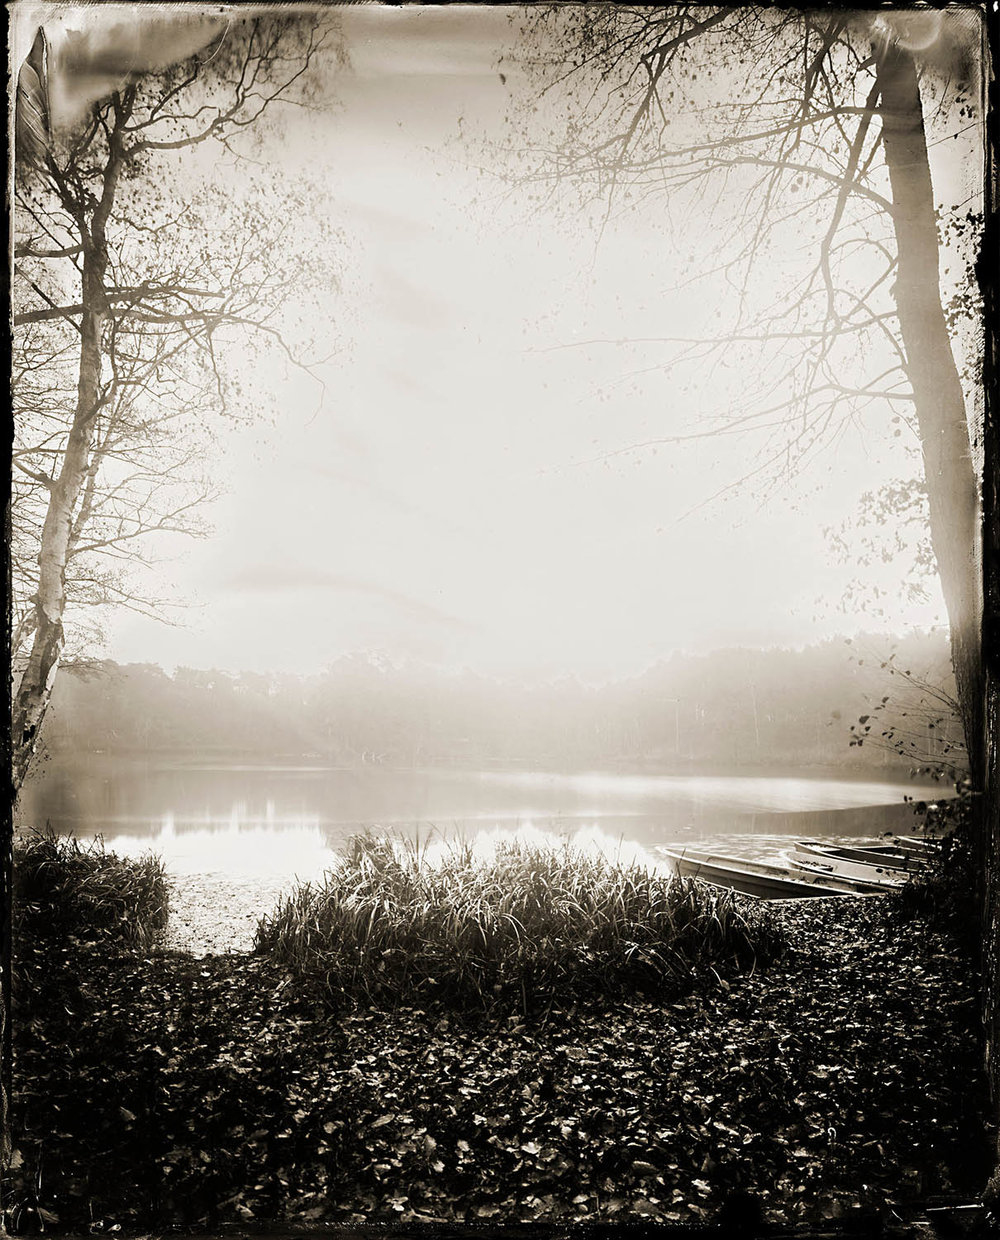 A Quiet Lakeside - By: Maximilian Zeitler  www.maximilianzeitler.com   Last October someone broke into the shared place I use for a studio and stole nearly all my large format cameras and a very rare and big lens I got borrowed from a friend for ultra large format portraits. Gathering equipment for wetplate always means searching auction houses and hoping to be lucky. Since I started wetplate about four years ago I therefore tried to get good equipment to work - that then was gone.  When I had overcome the first shock I packed the last 'portable' wooden camera and all my darkroom equipment and drove into the Spreewald near Berlin to escape the studio and all the bad thoughts. At this small lake in the woods I set up the camera from 1890 together with an old wide angle lens from 1880 and exposed one plate around 60 seconds.  One should always keep on doing what you love!